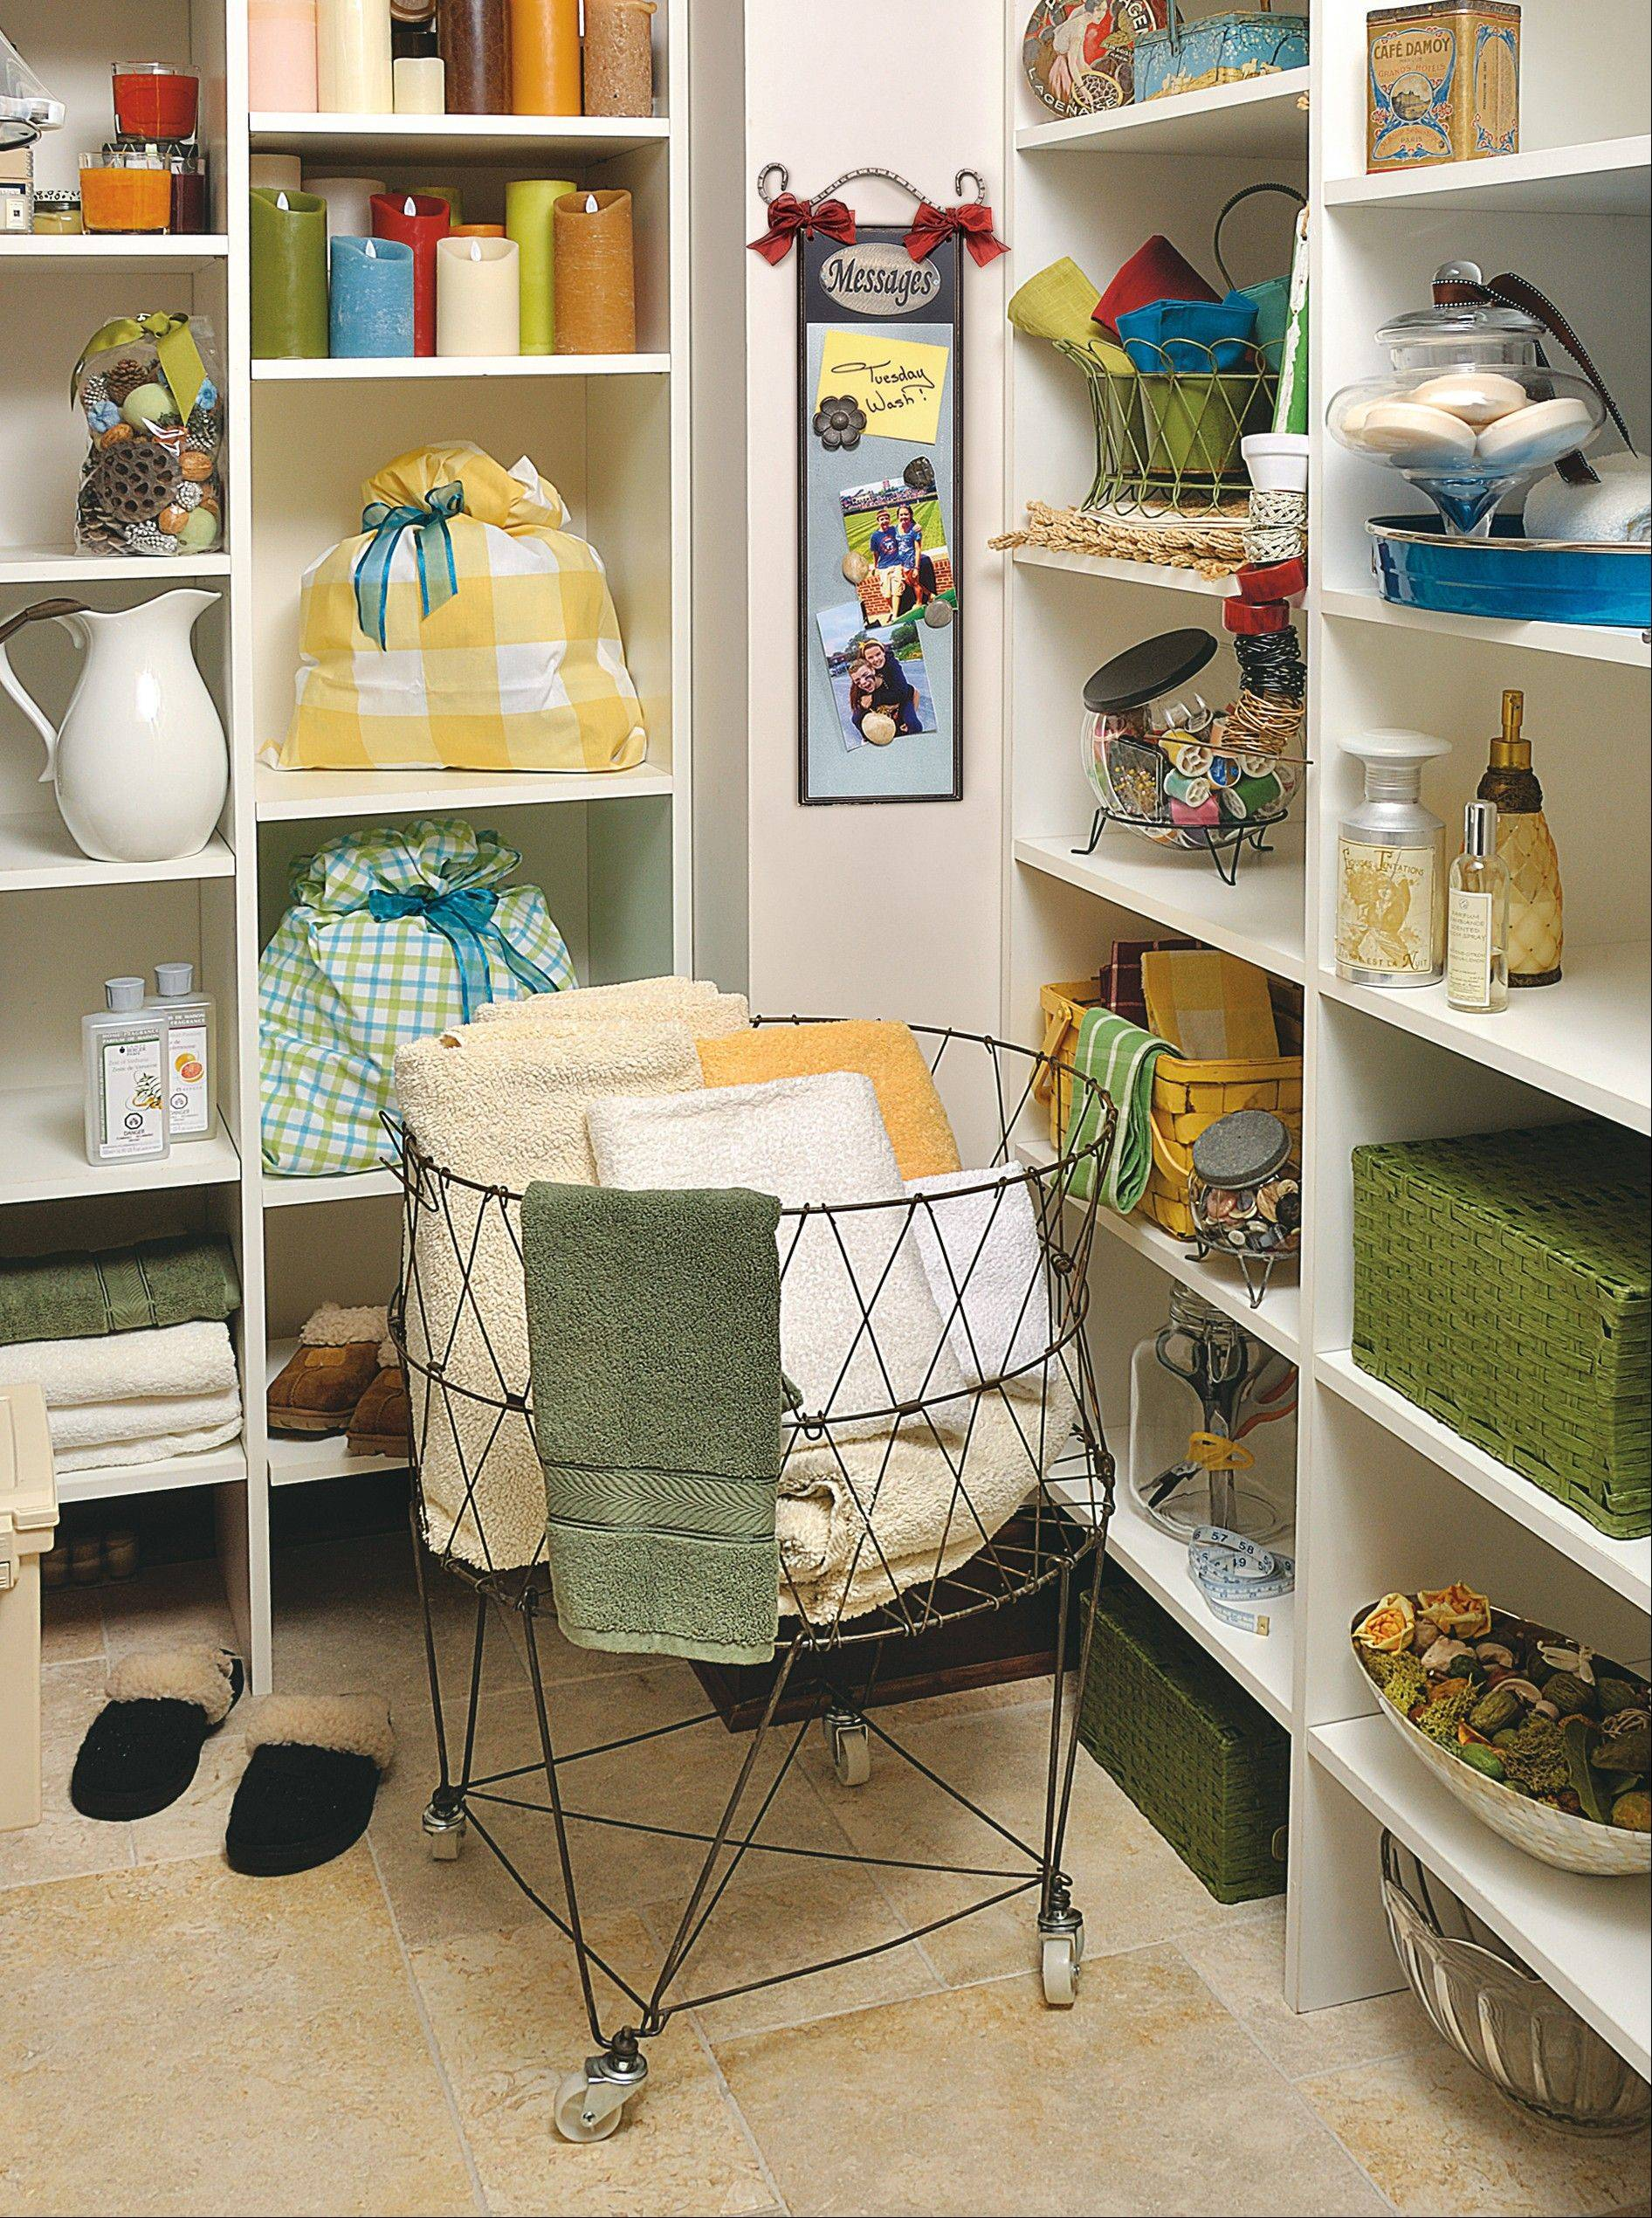 Jamie Adcock is lucky enough to have a linen closet adjacent to her mudroom. There she has a corner with simple shelving that allows her clever organization tricks to shine.